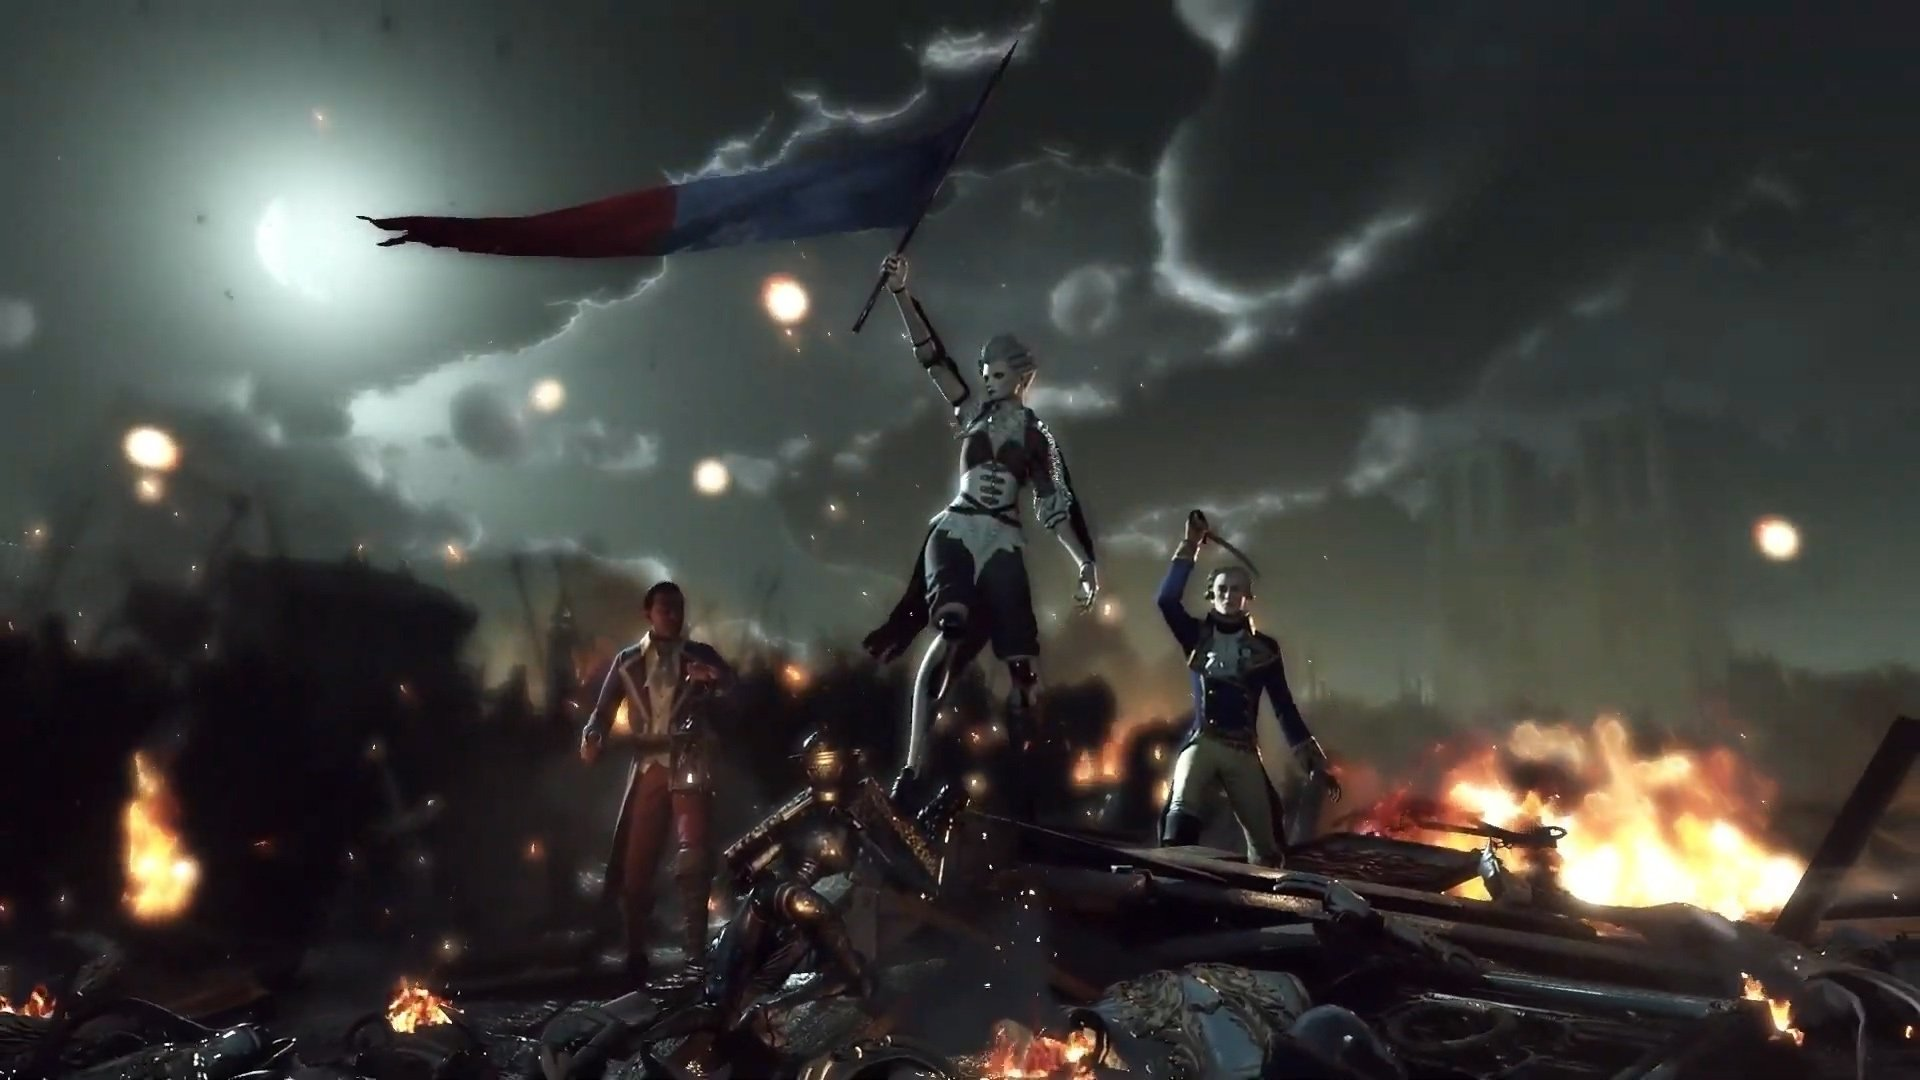 Steelrising is an action RPG about the robot French Revolution from the GreedFall developer